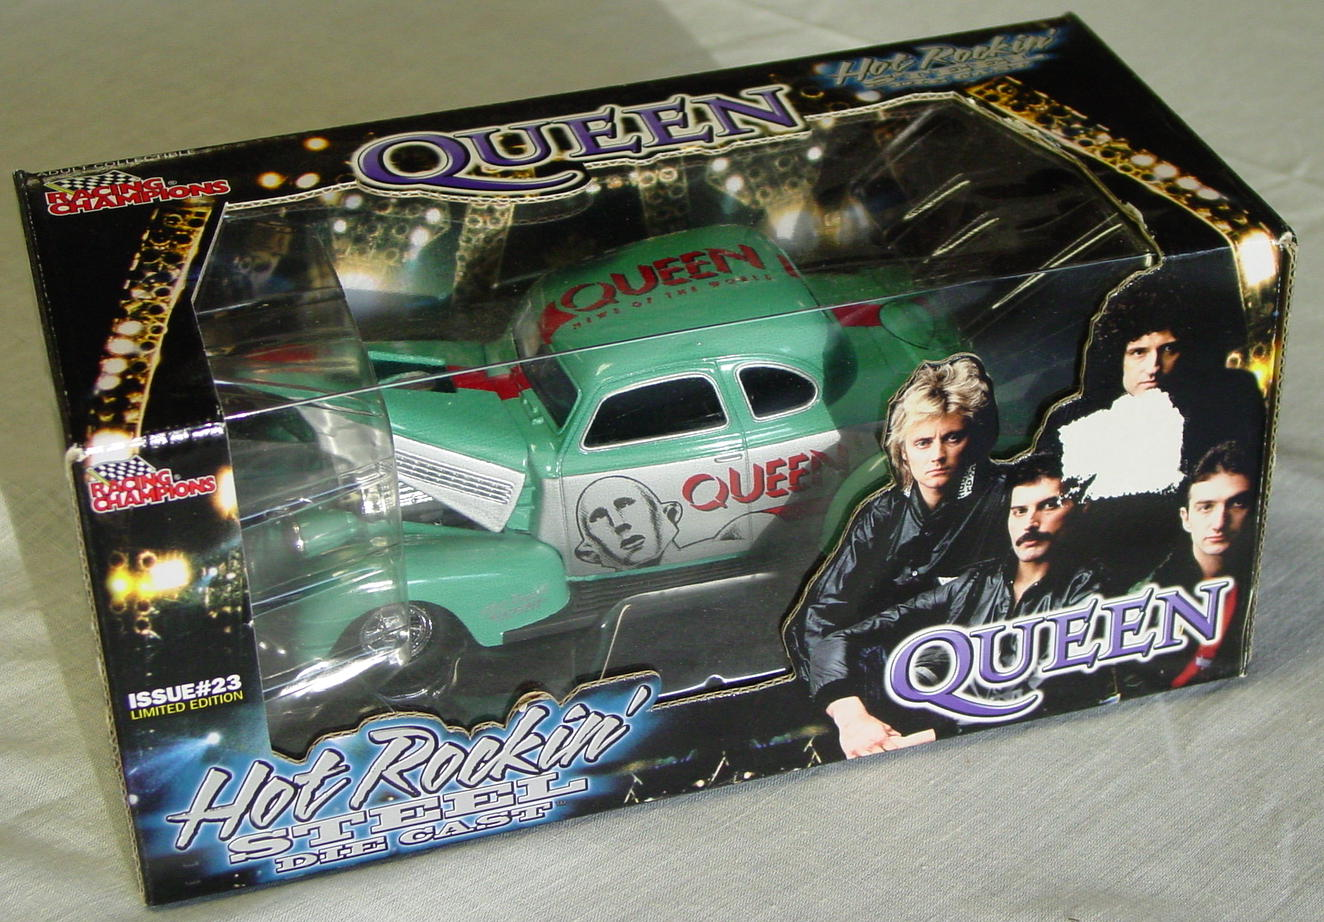 1_24 Scale - RC Queen No 23 Aqua Roadster